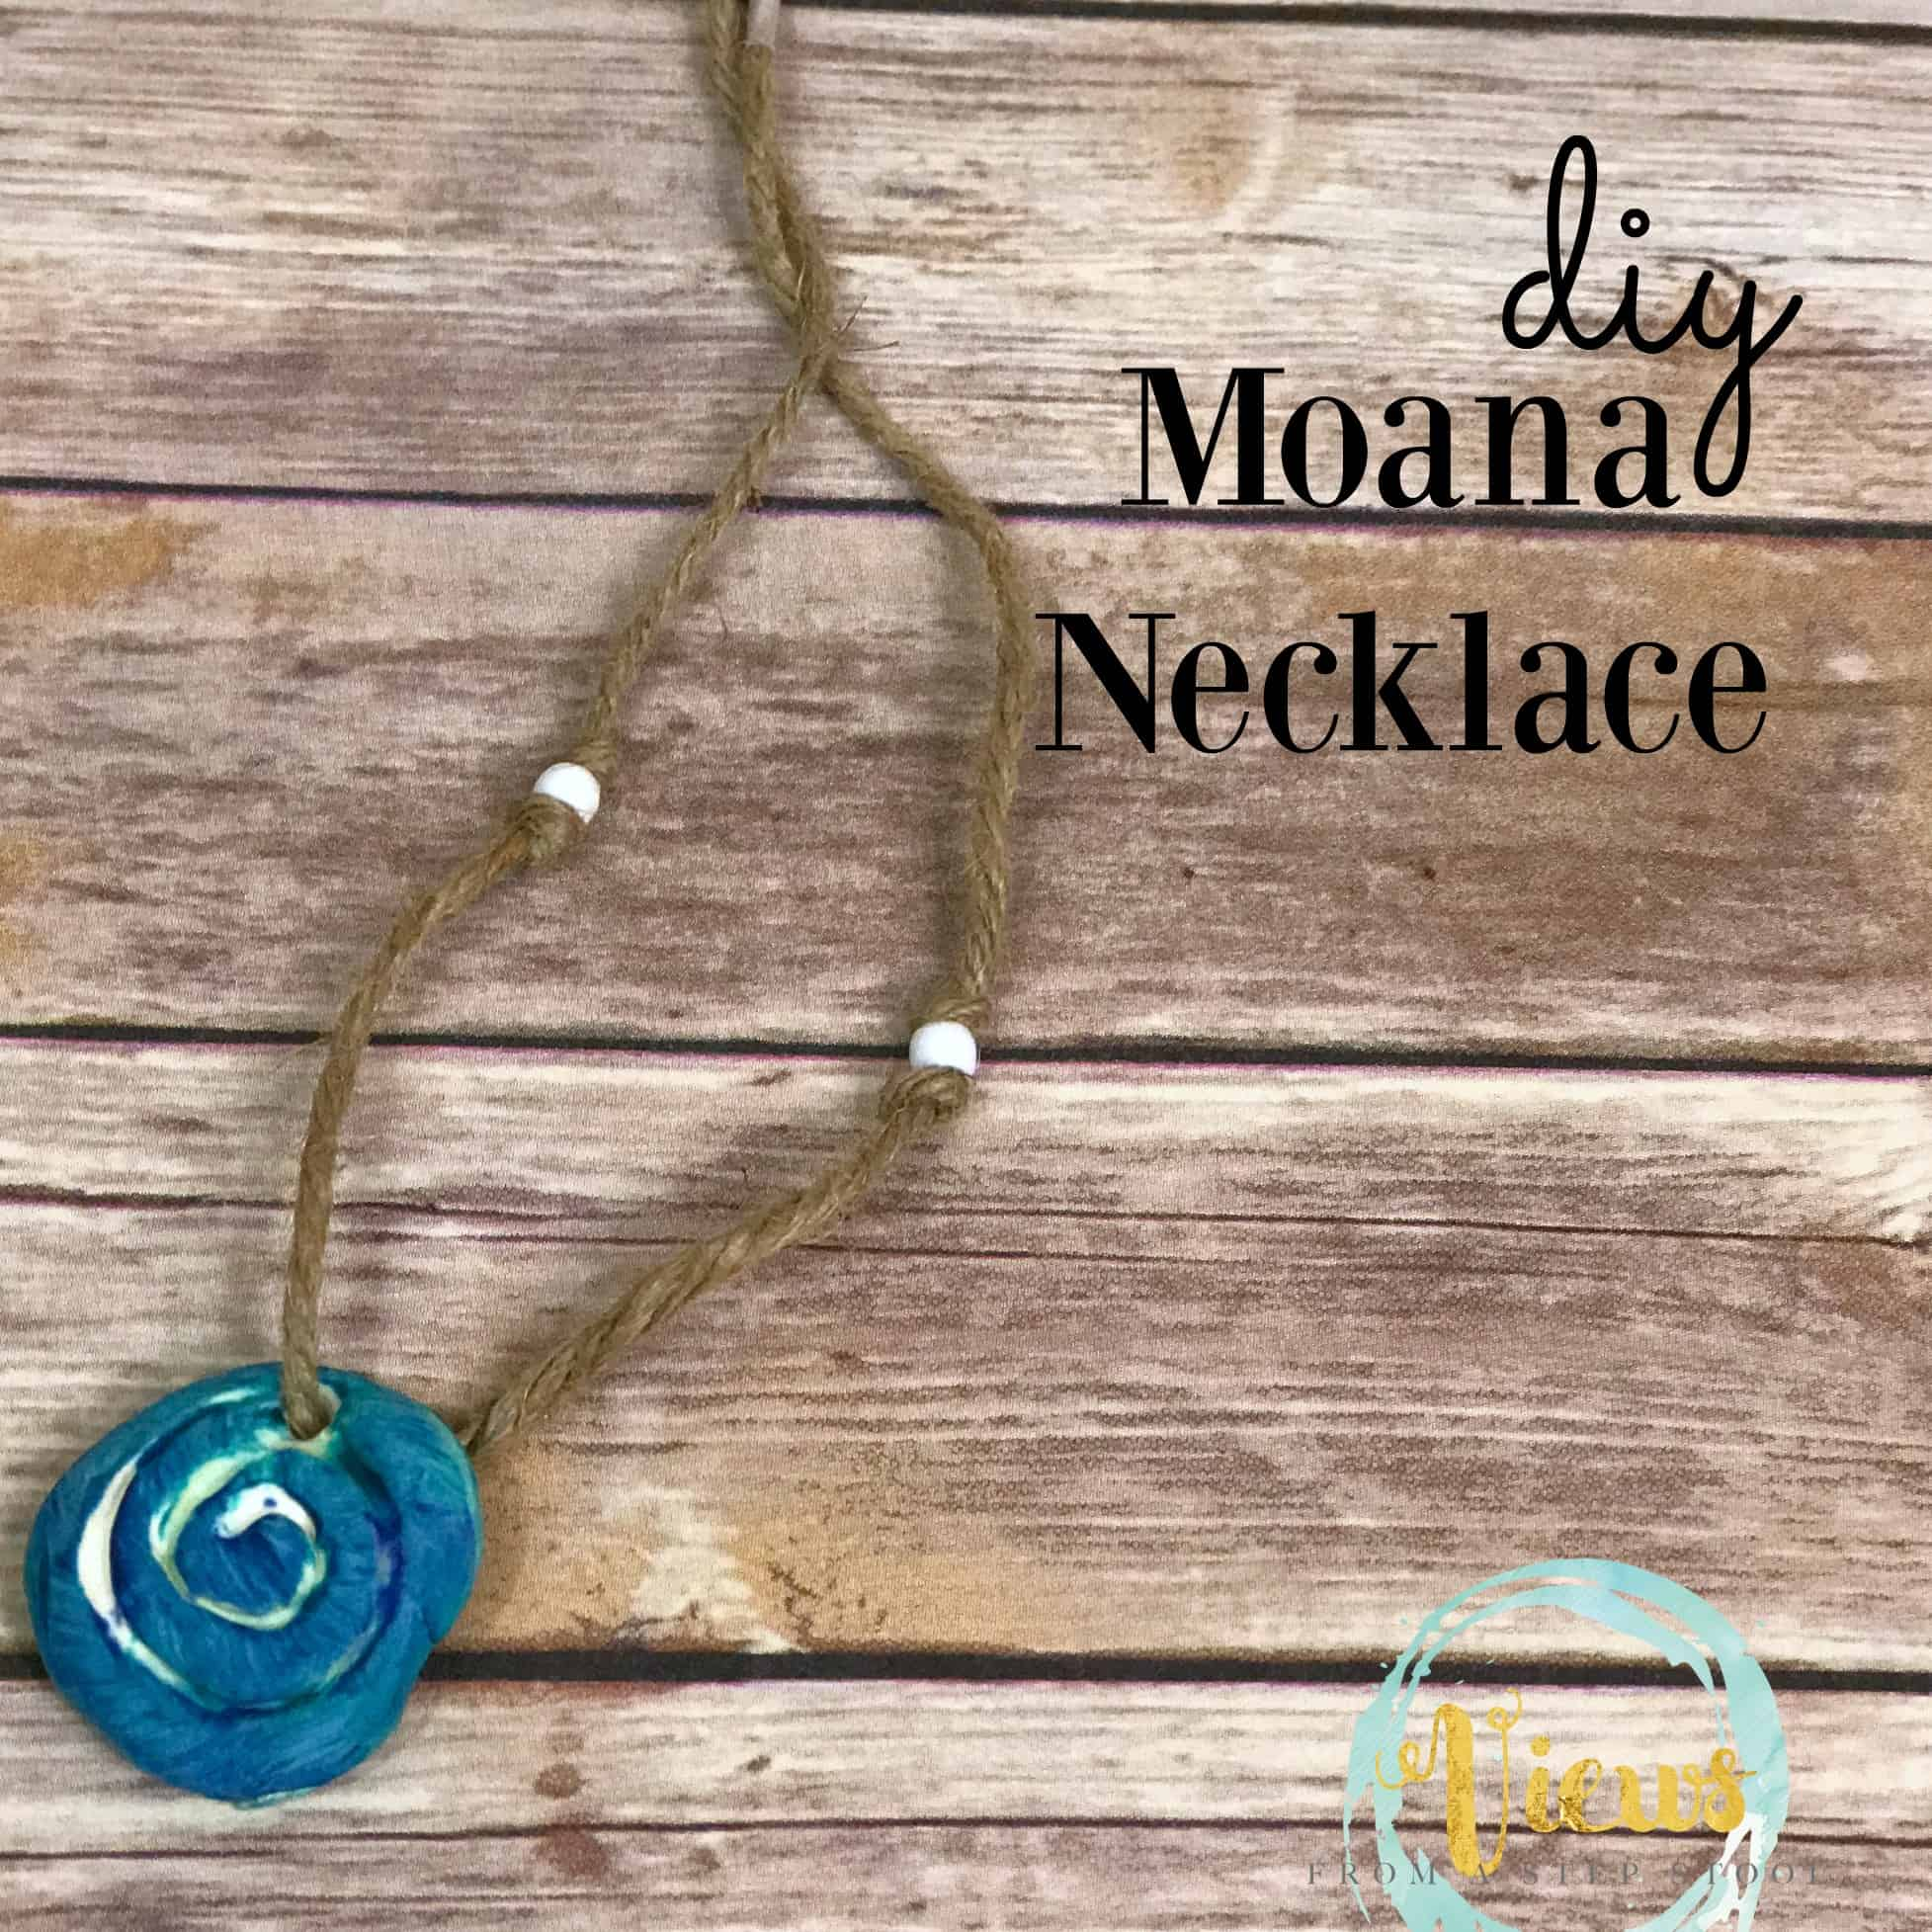 This simple DIY Moana necklace is great for kids of all ages. Easy to make with very few materials, perfect for pretend play or dress-up!